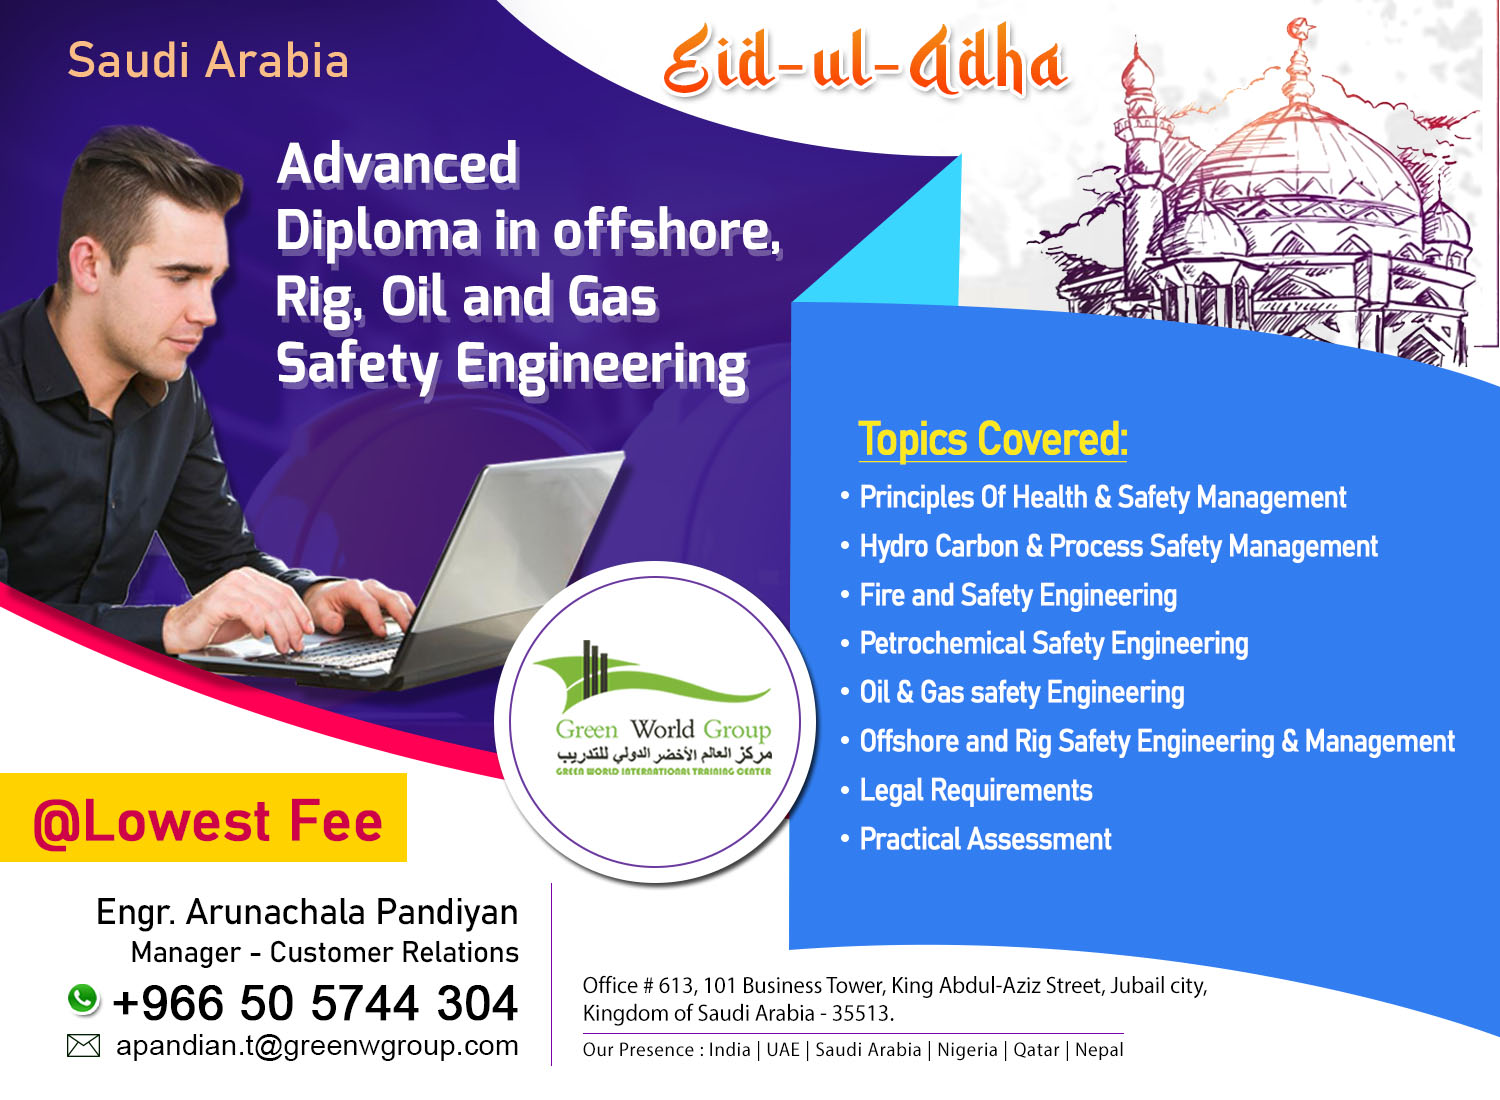 Advanced Diploma in offshore, Rig, Oil and Gas Safety Engineering